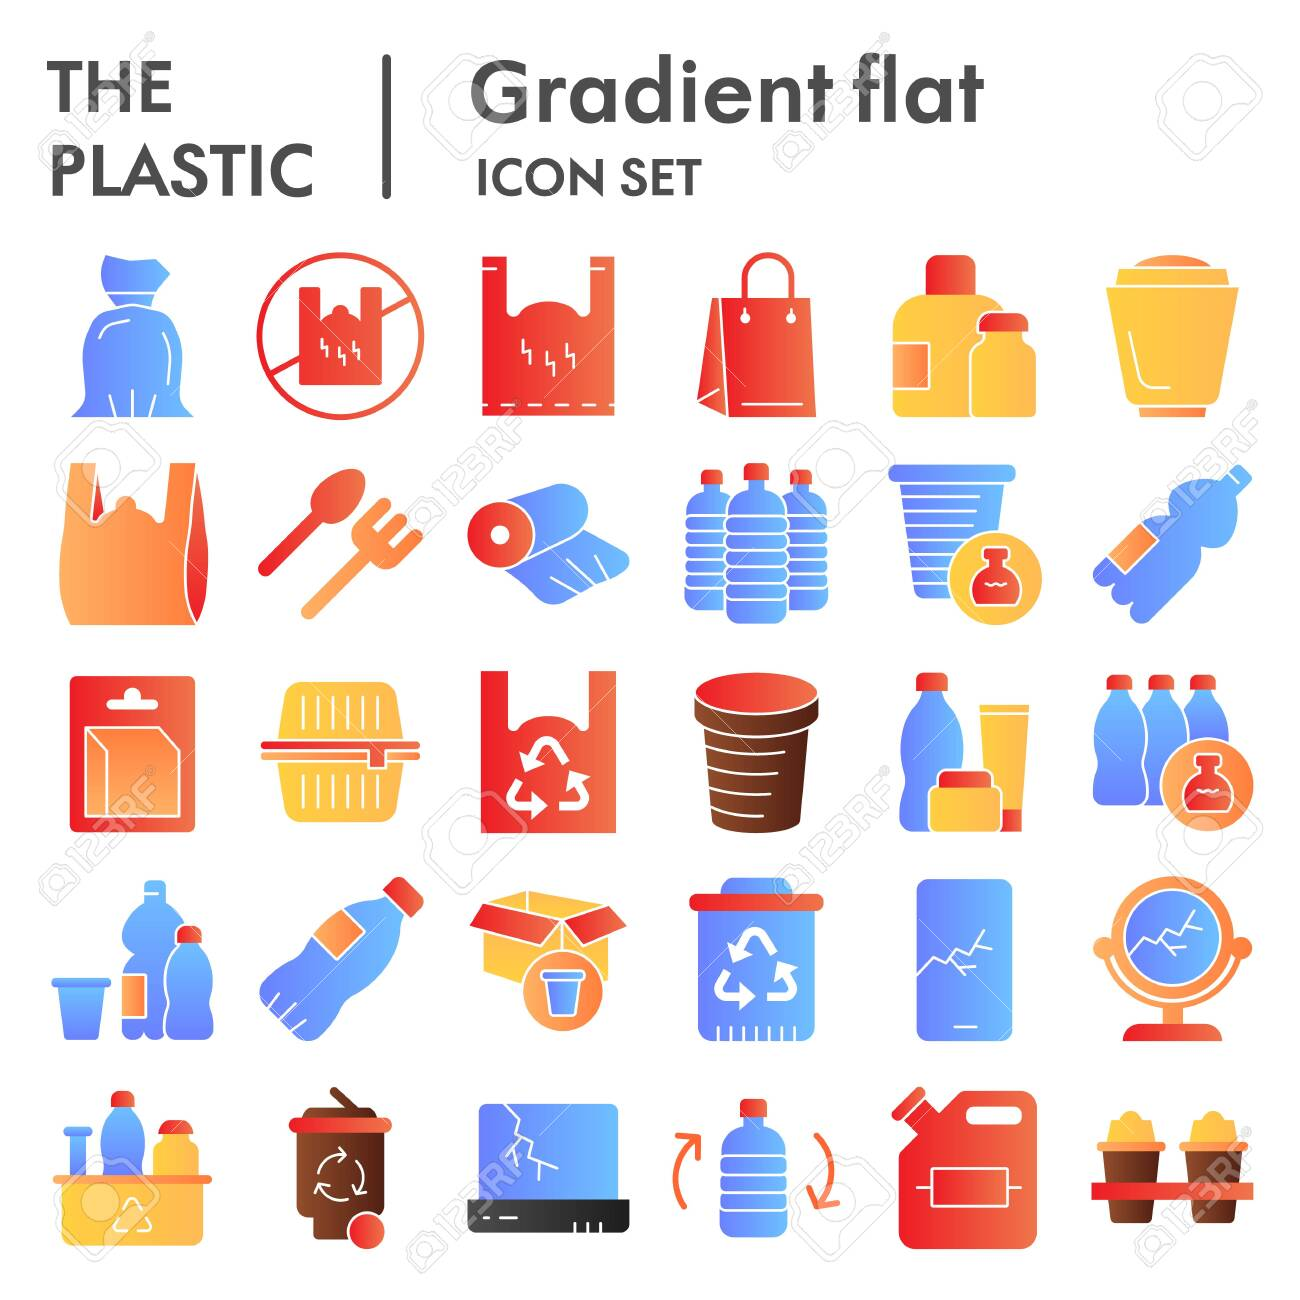 Plastic products flat icon set. Zero waste collection, sketches, logo illustrations, web symbols, gradient style pictograms package isolated on white background. Vector graphics. - 141668074